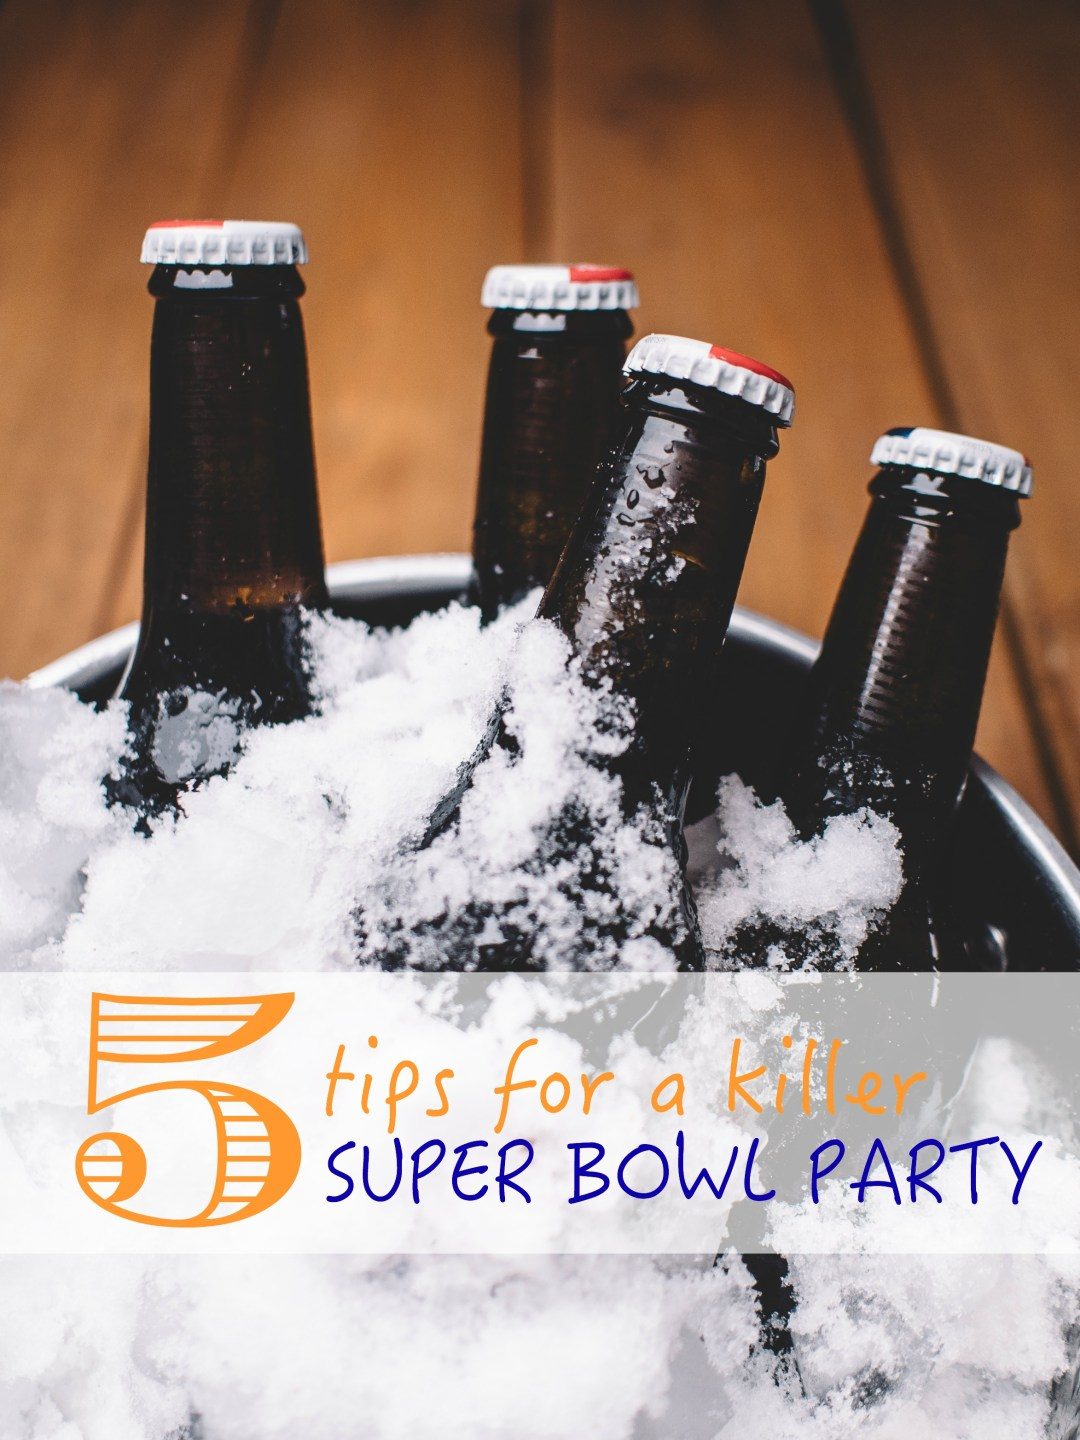 Tips and tricks for making your Super Bowl Party a success.